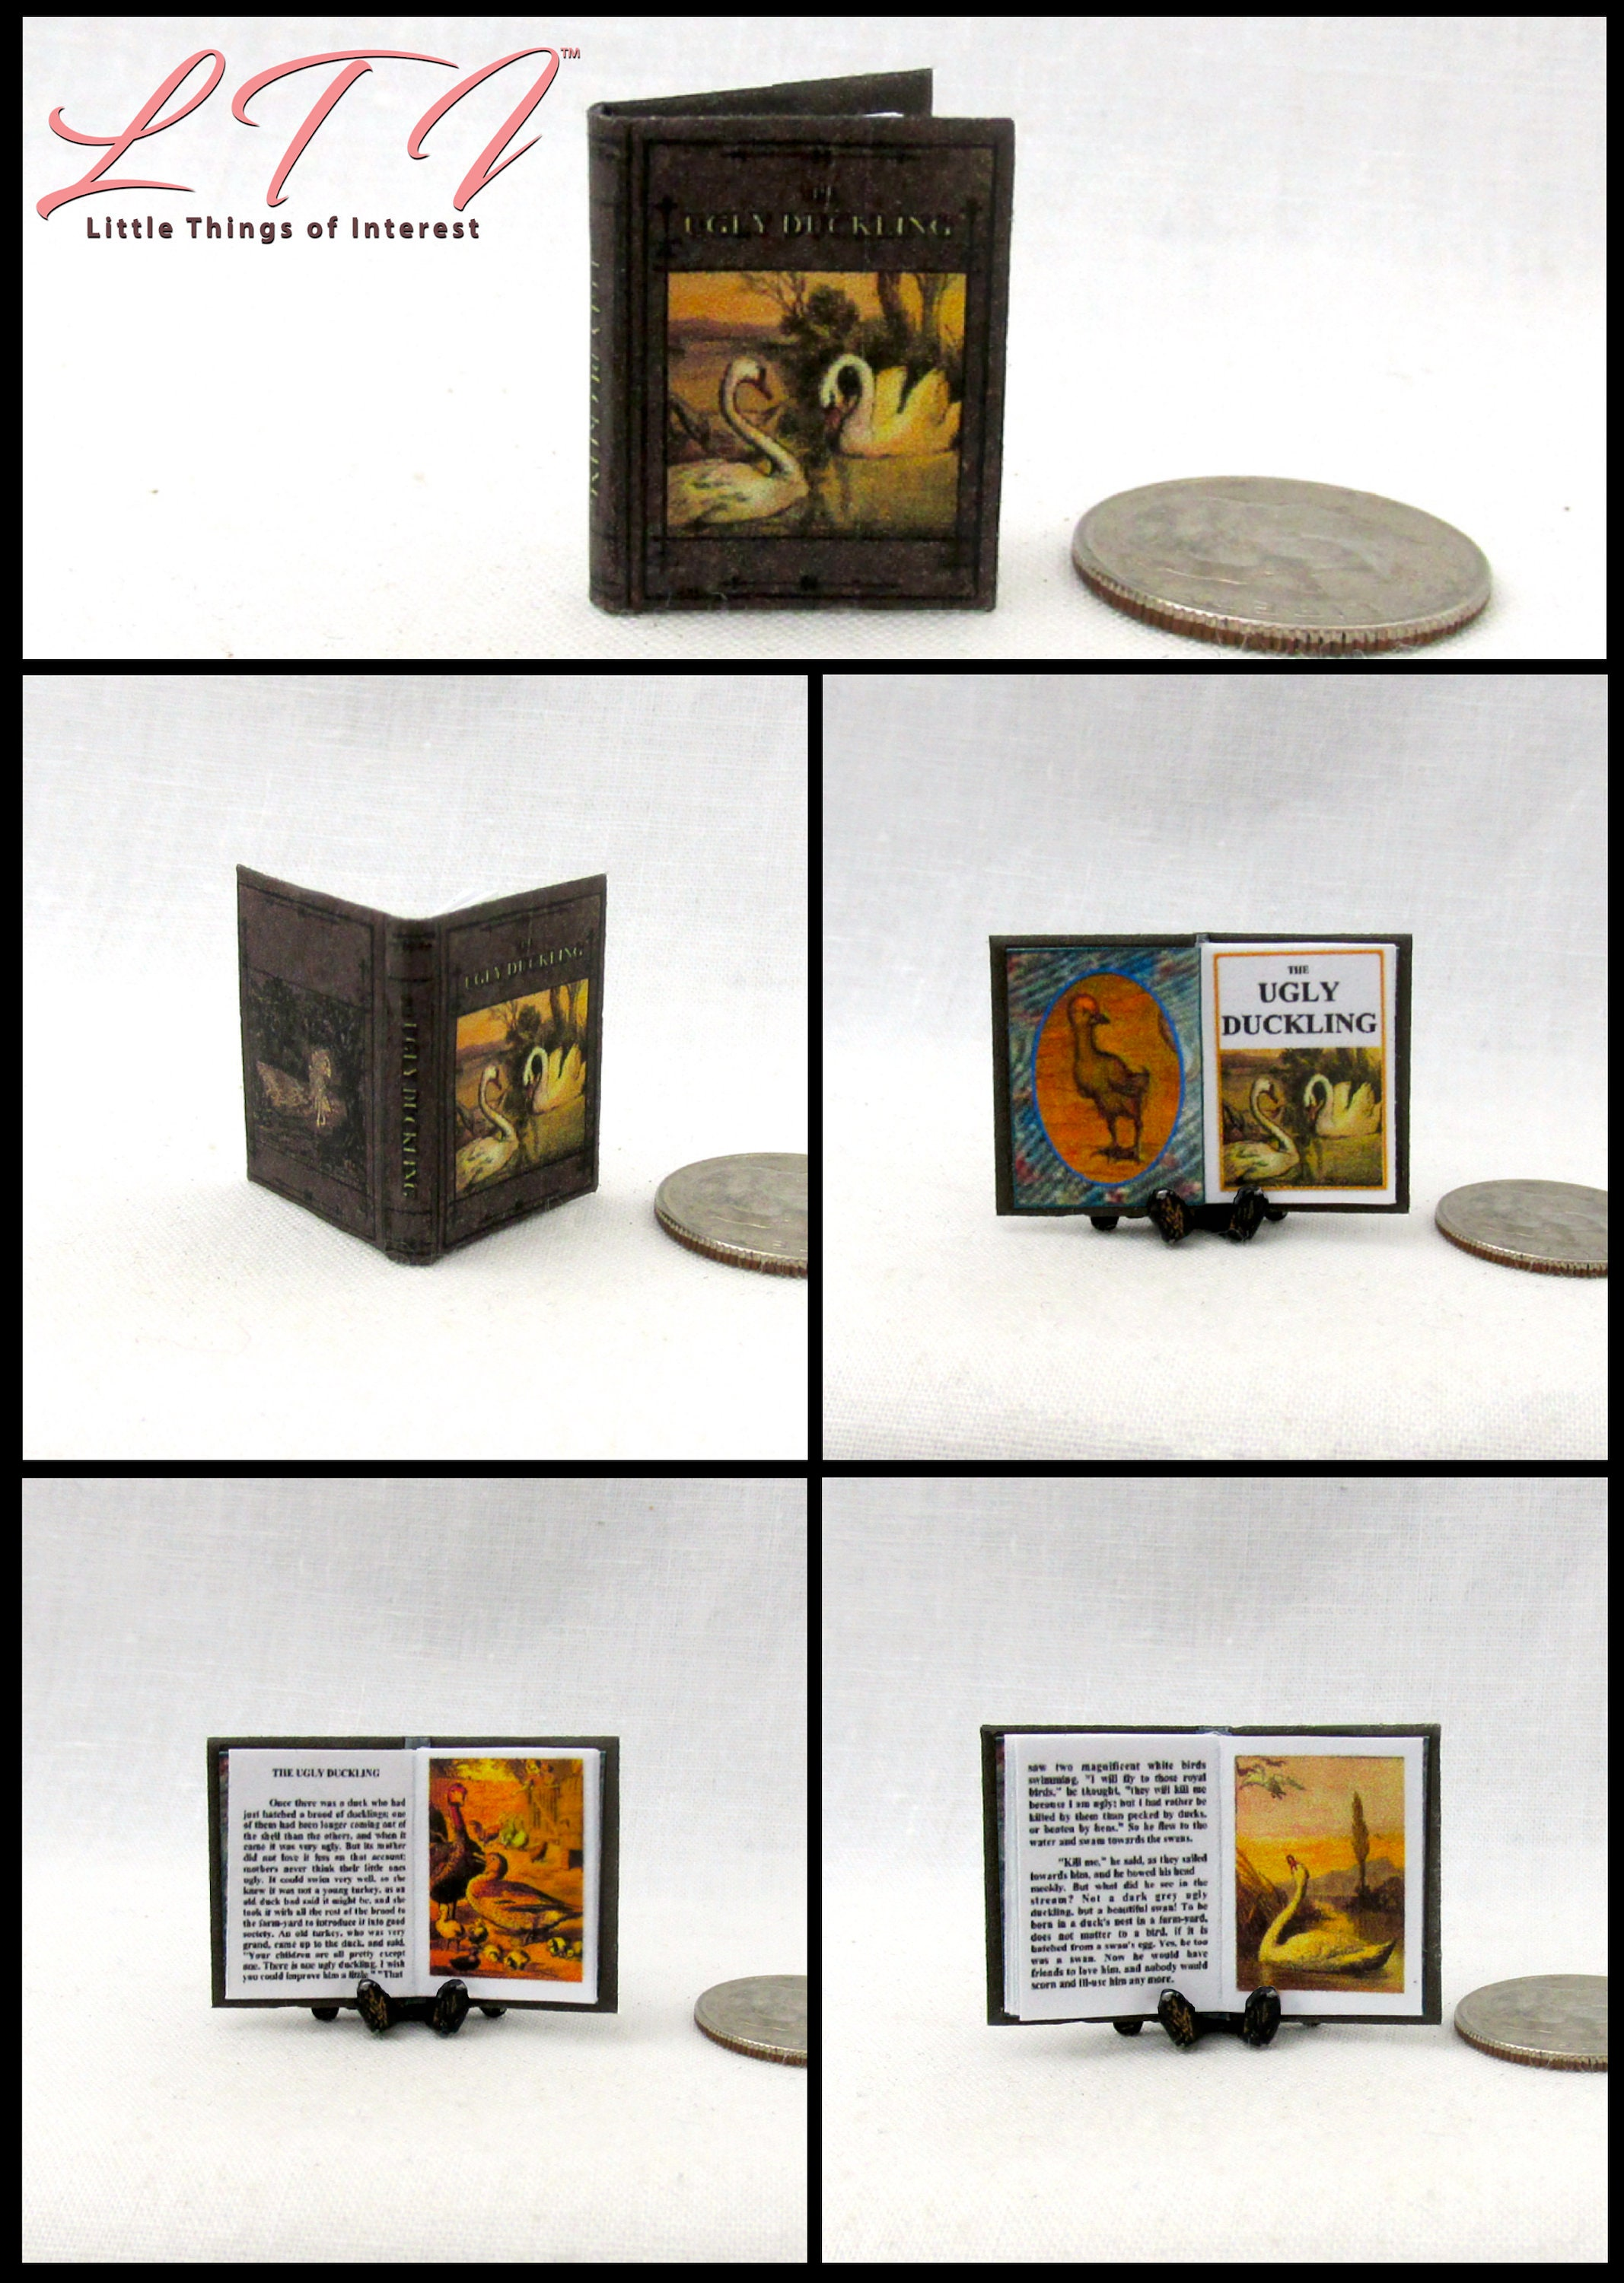 ILLUSTRATED GRIMM/'S FAIRY TALES Miniature Book Dollhouse 1:12 Scale READABLE